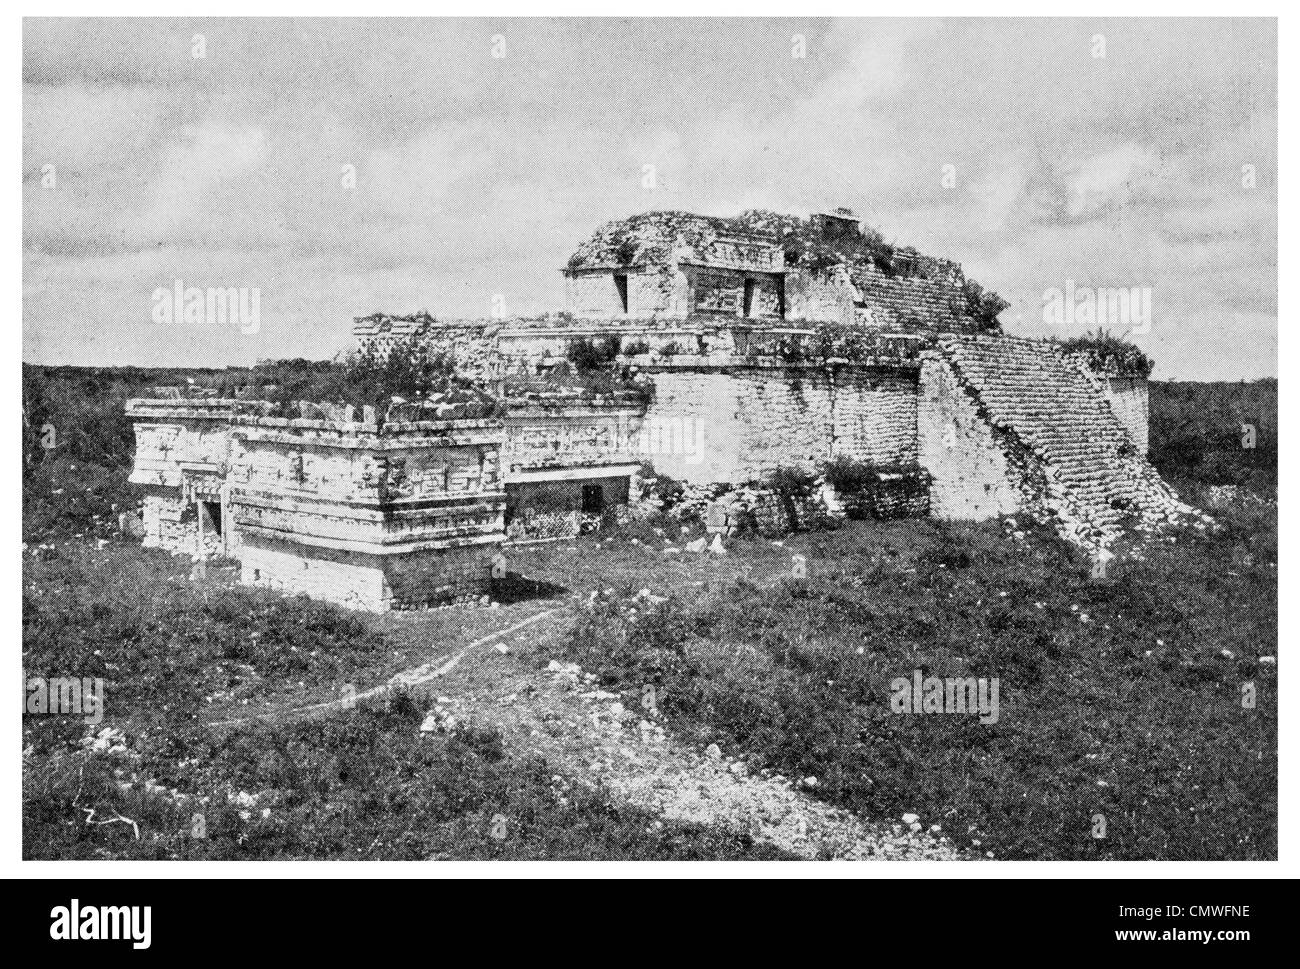 1925 Monjas Palace Itzan Rule Yucatan, Mexico, Central America - Stock Image